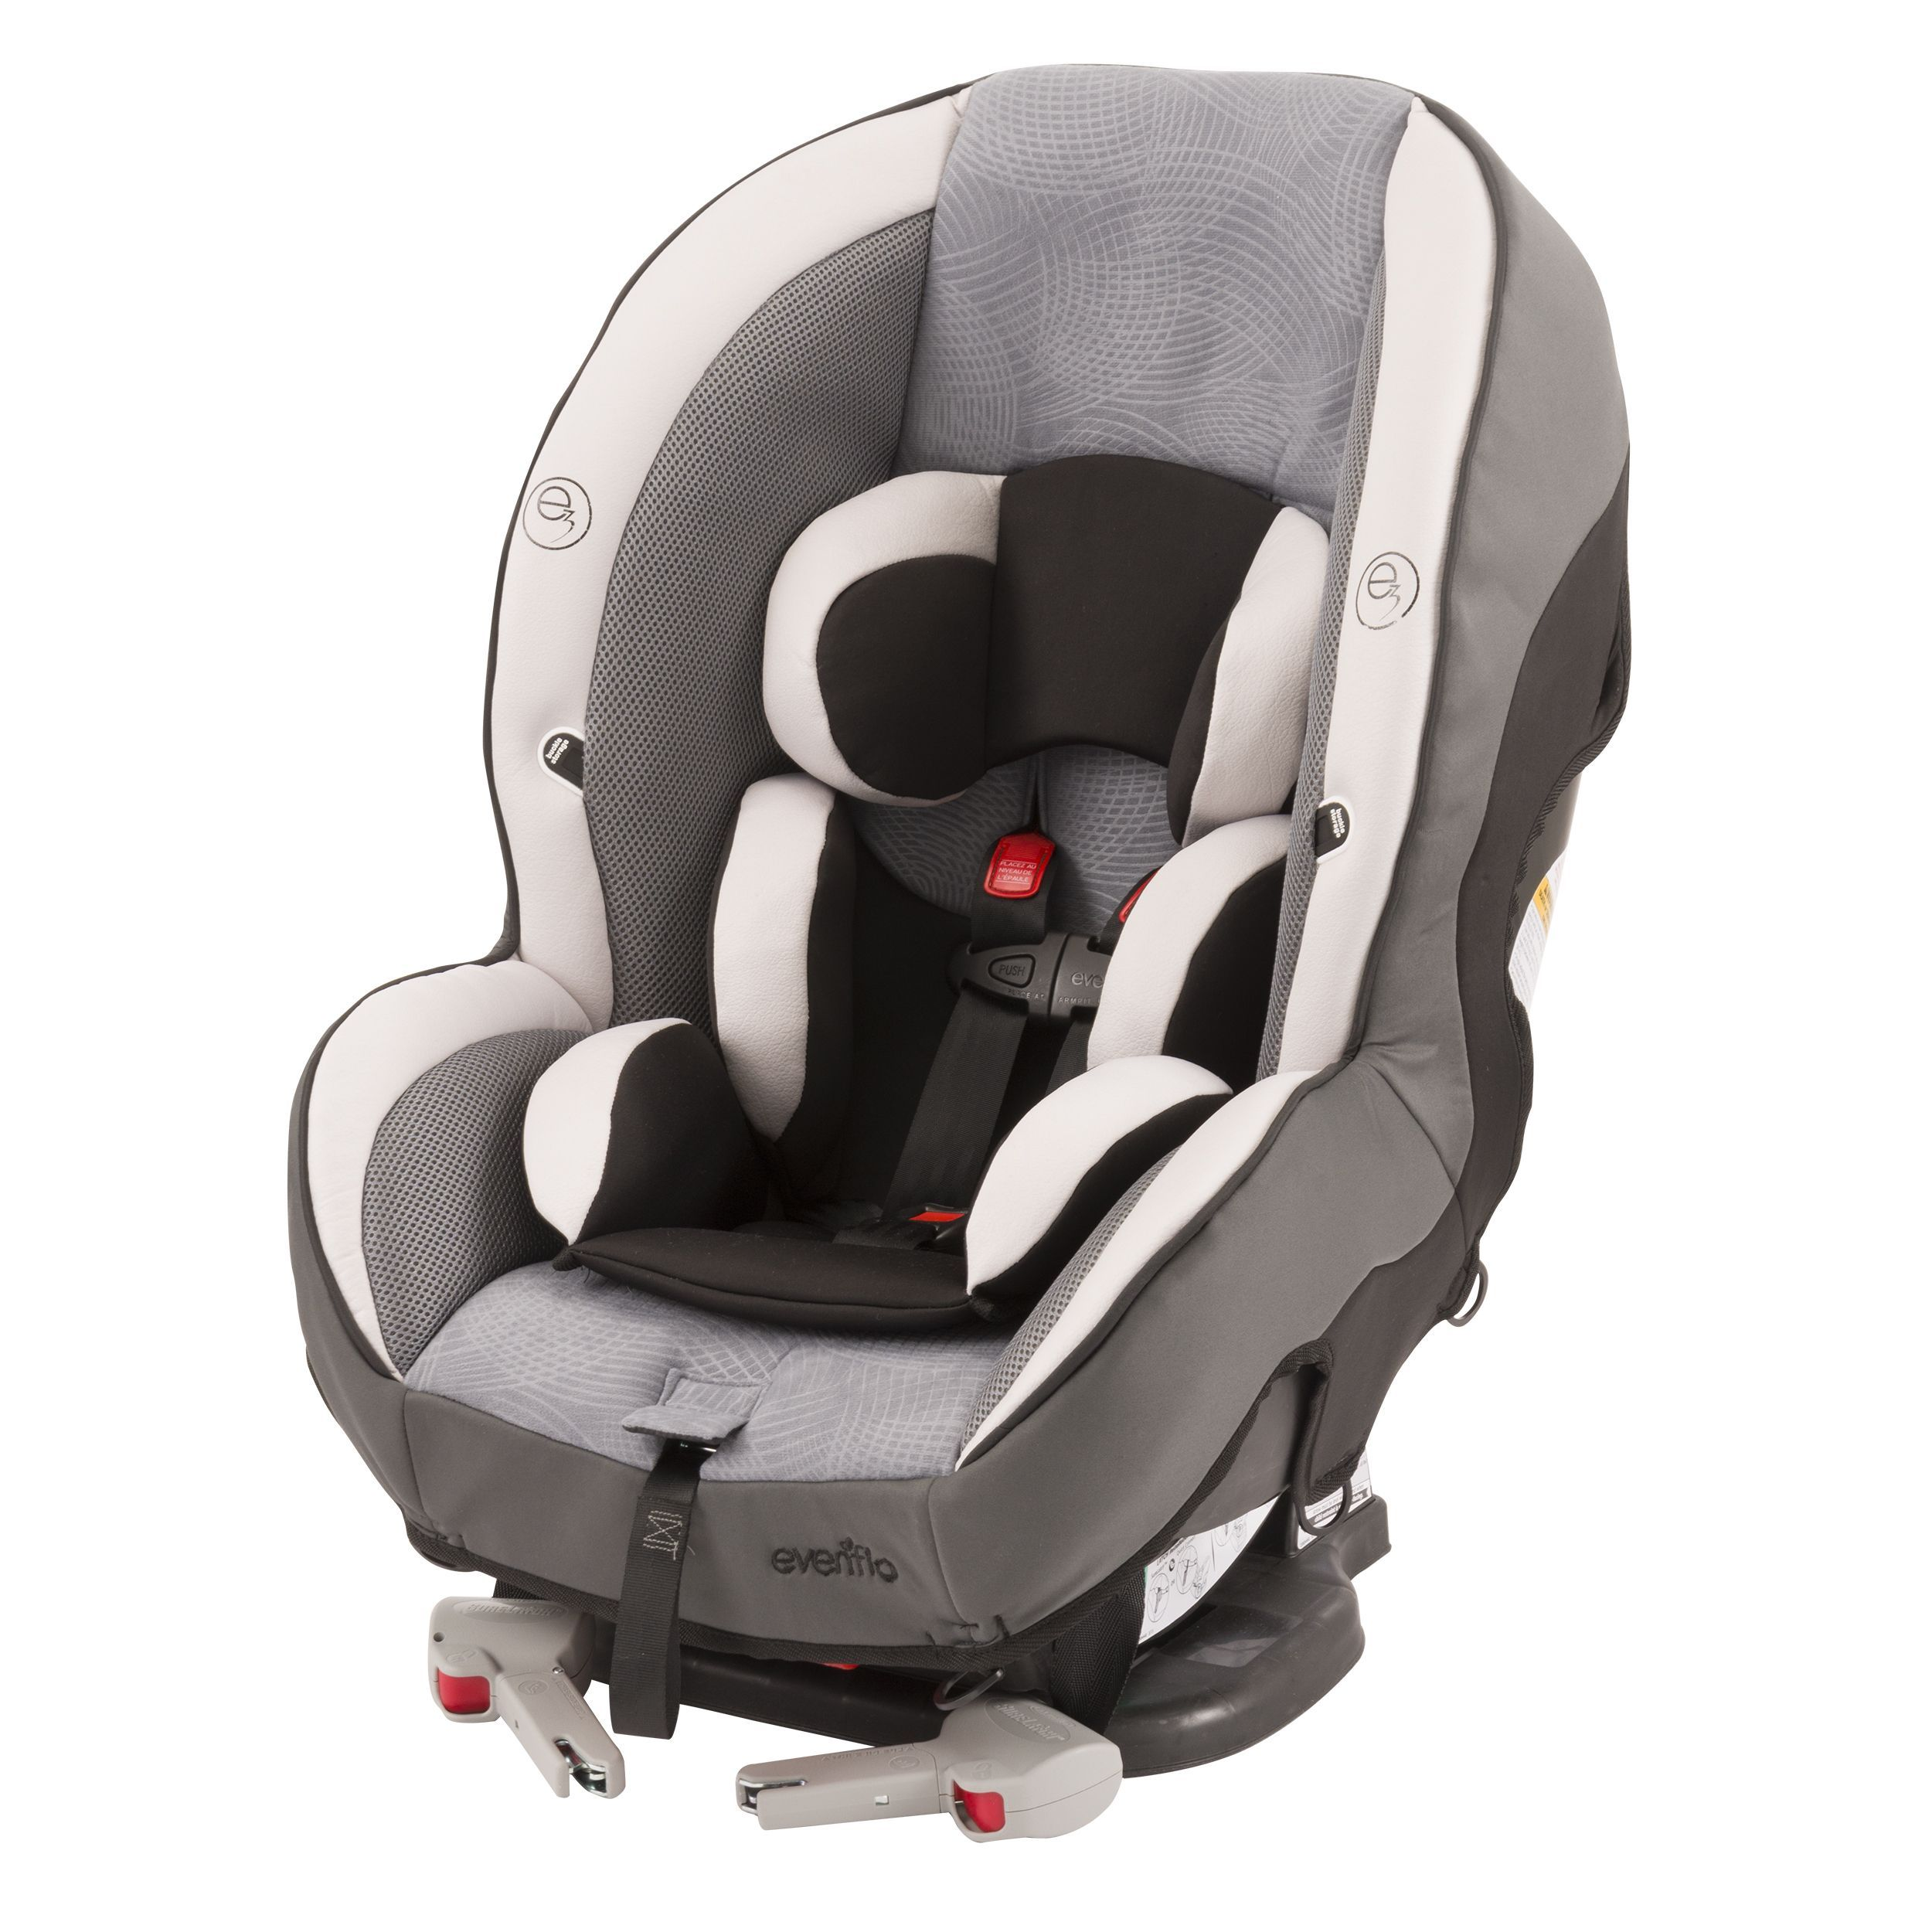 Evenflo Momentum DLX Convertible Car Seat in Bailey Baby